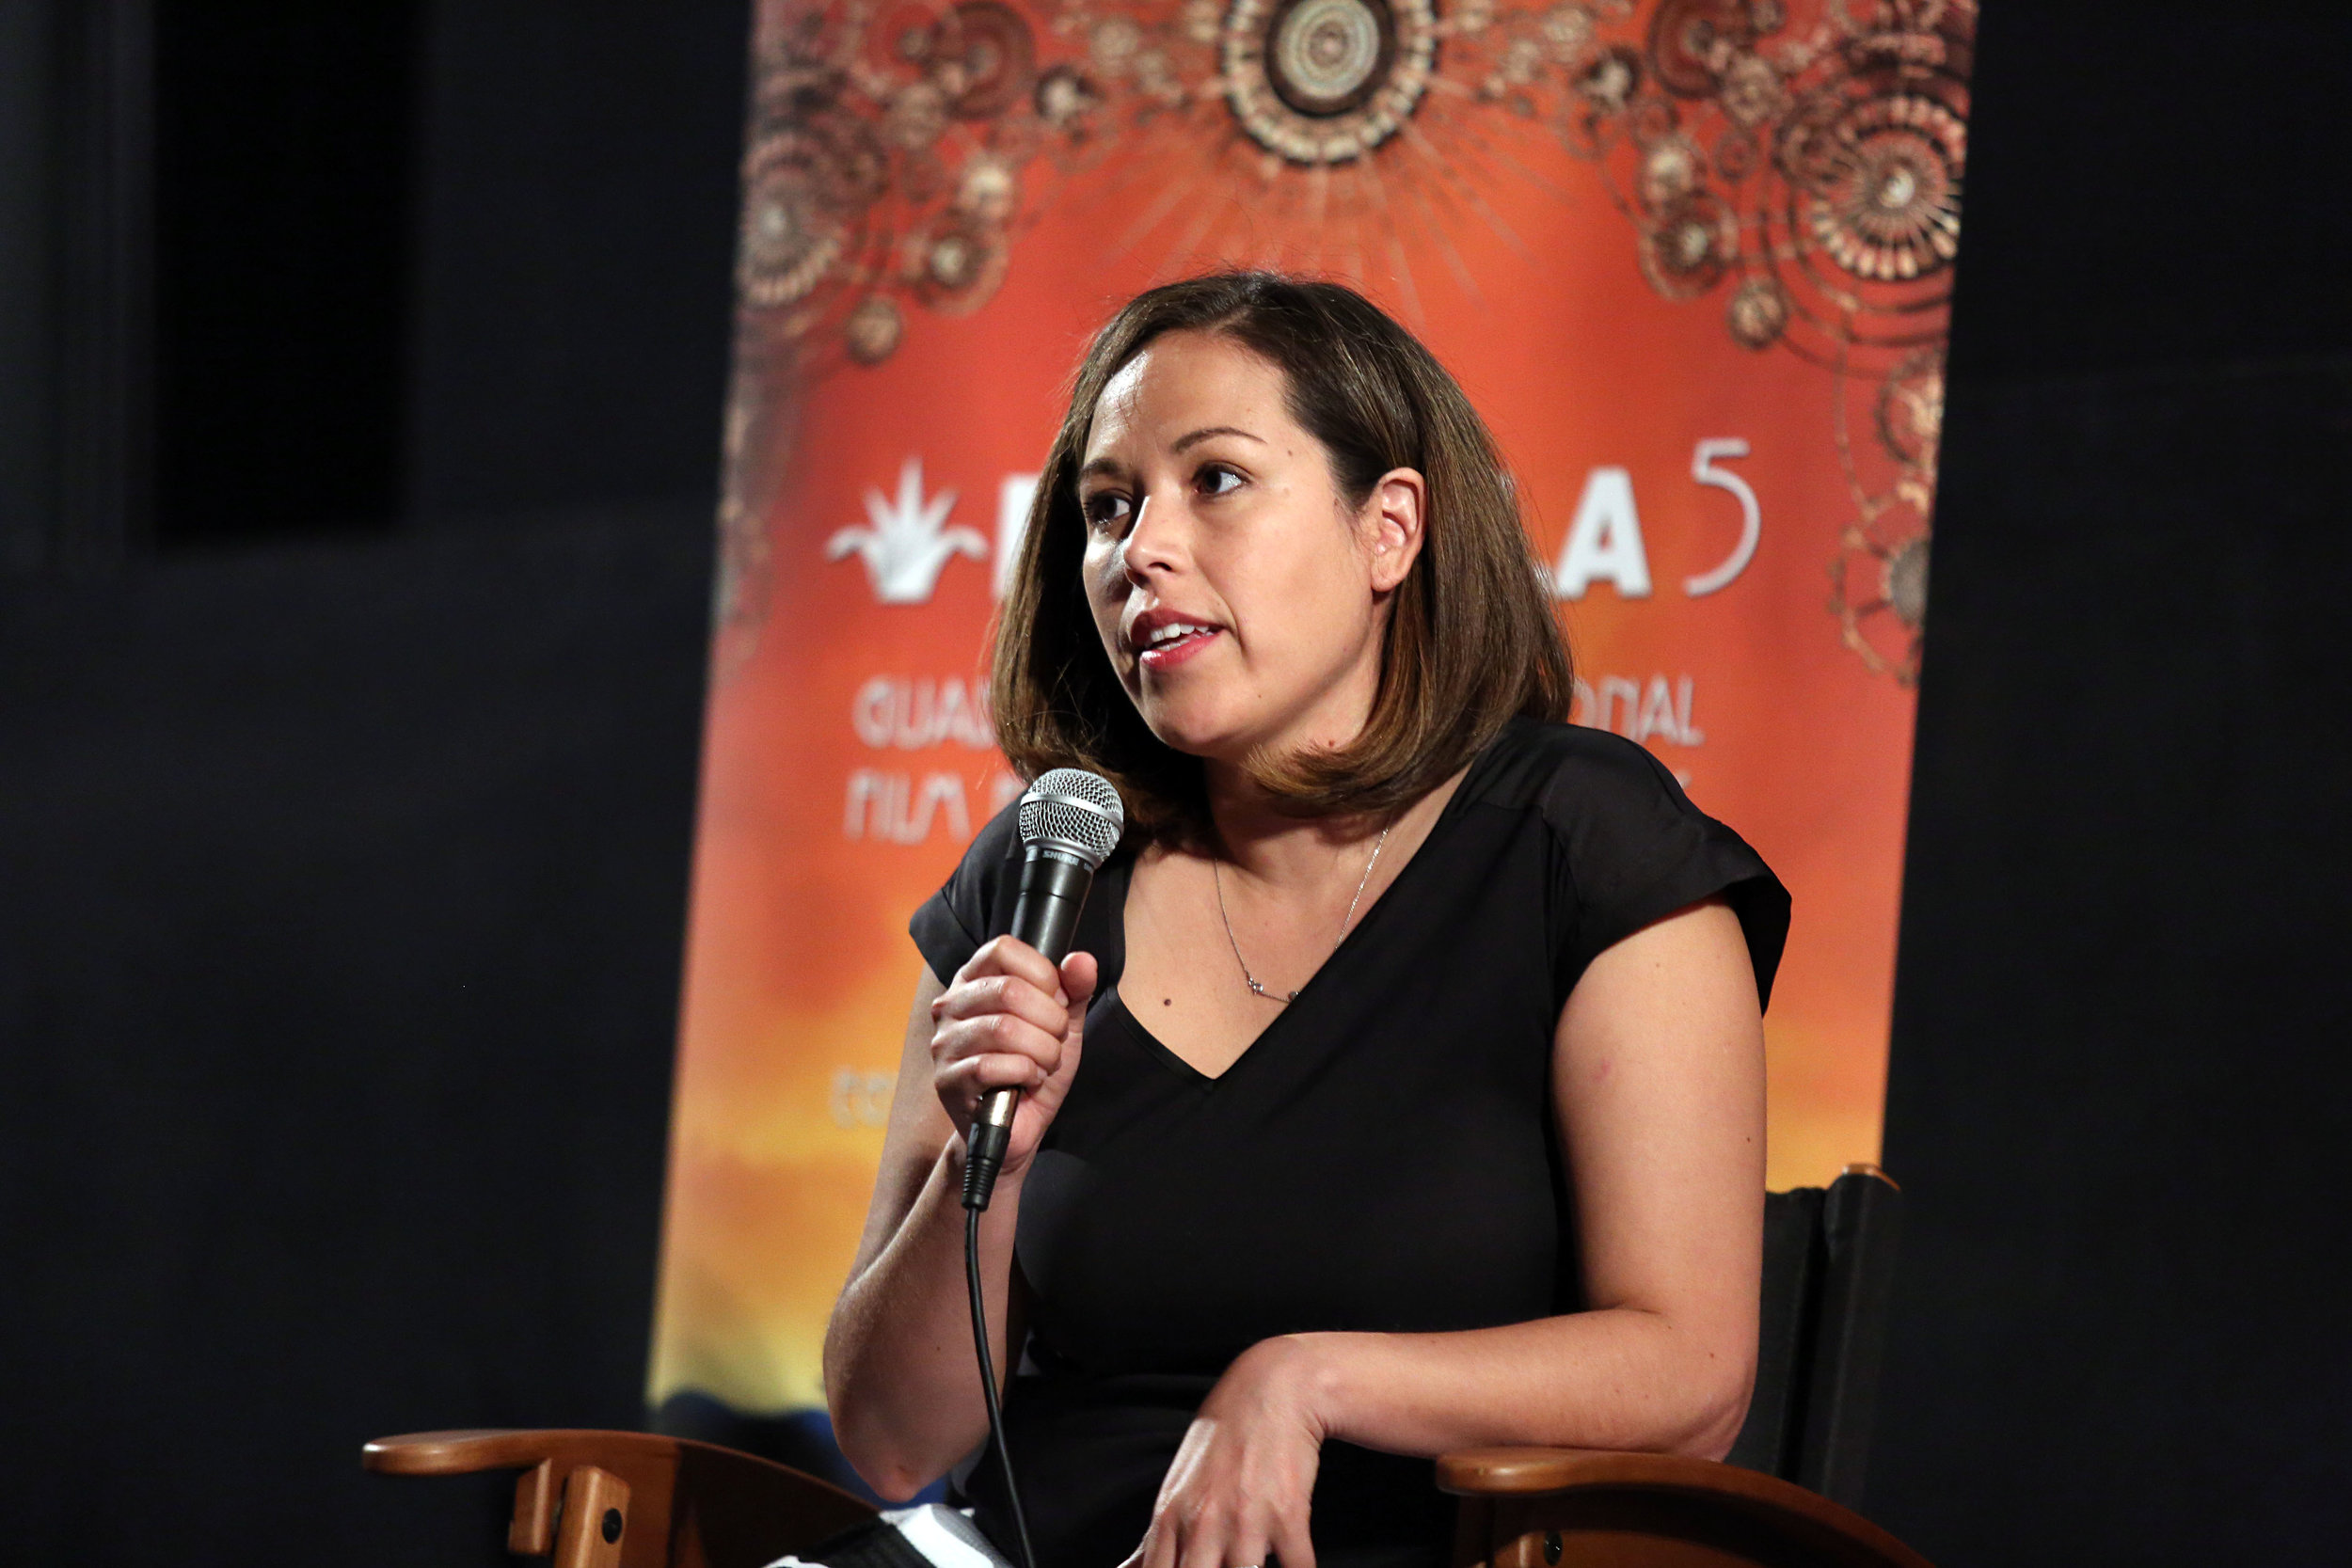 Andrea Garcia, Astrid's lawyer, at the FICG in Los Angeles. ©Juan Tallo, FICG in LA